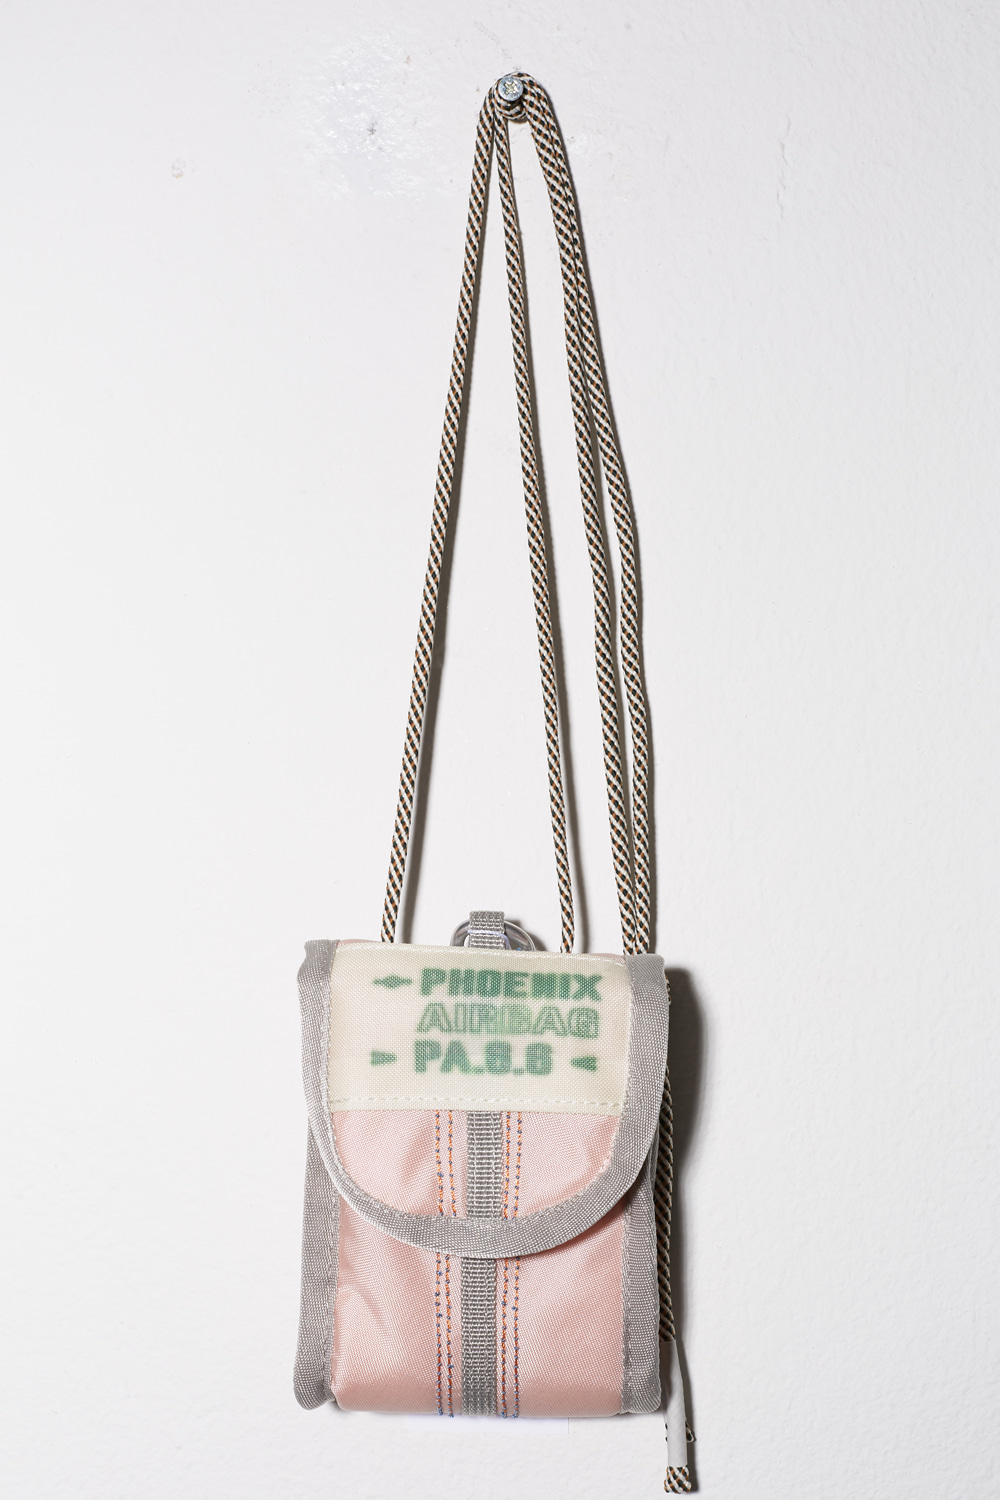 [스크랩]  AIR mini bag V2 Pink